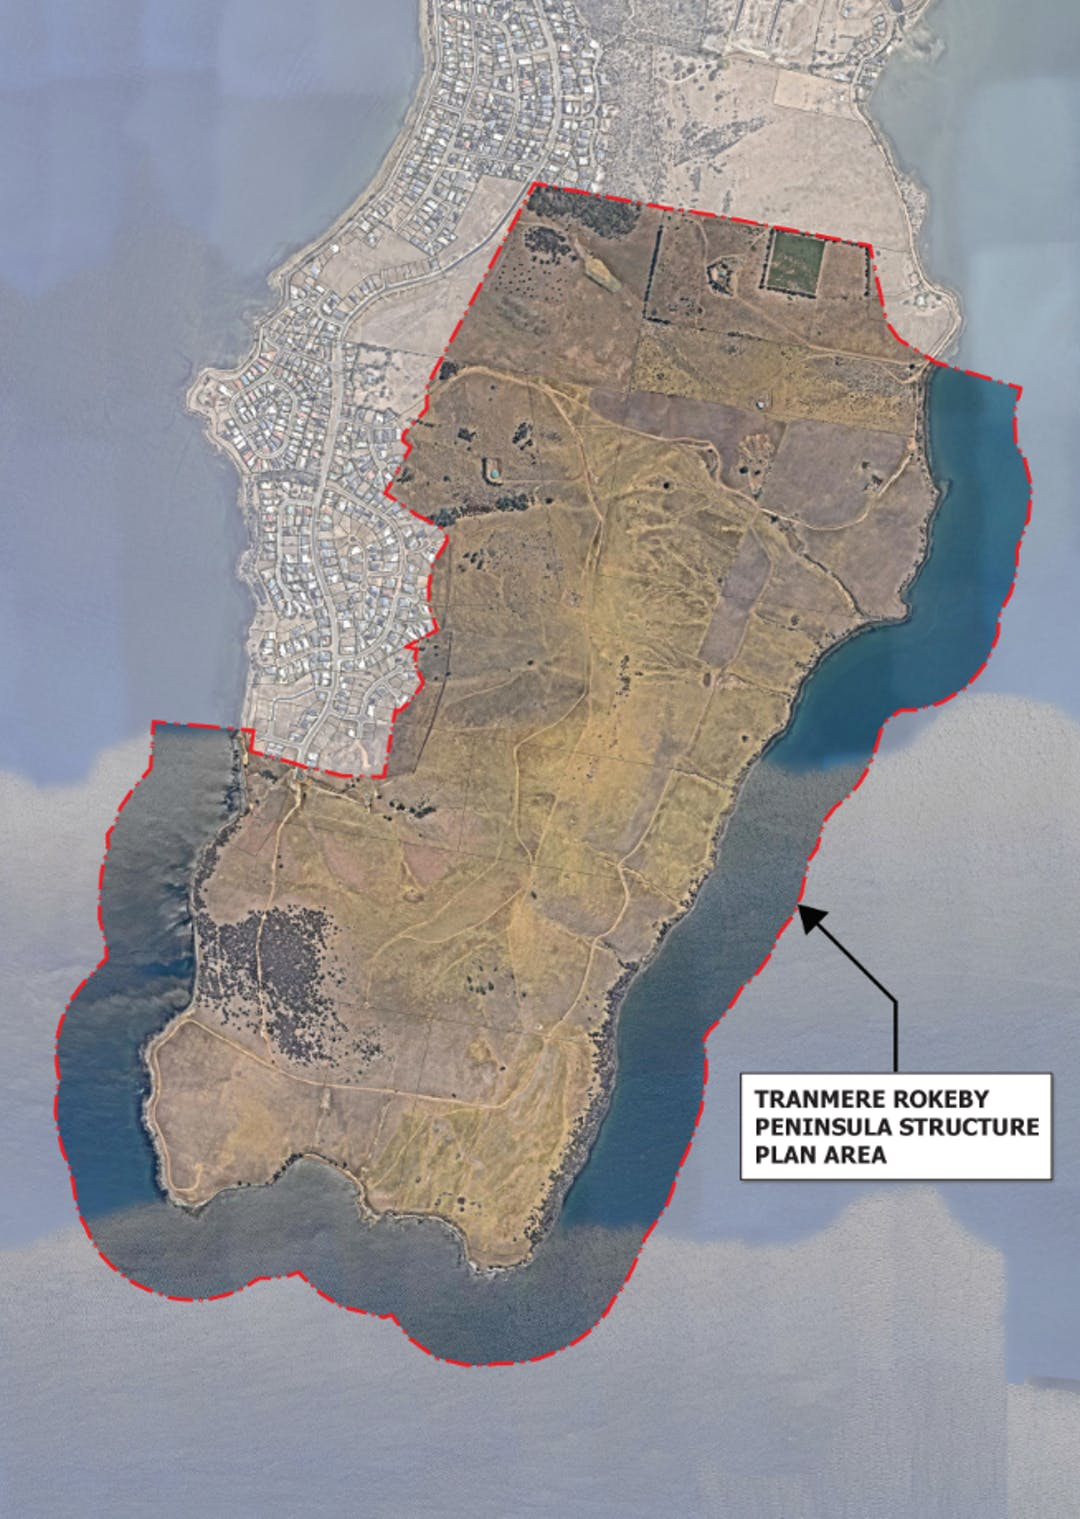 Picture of a map showing the Tranmere and Rokeby Peninsula